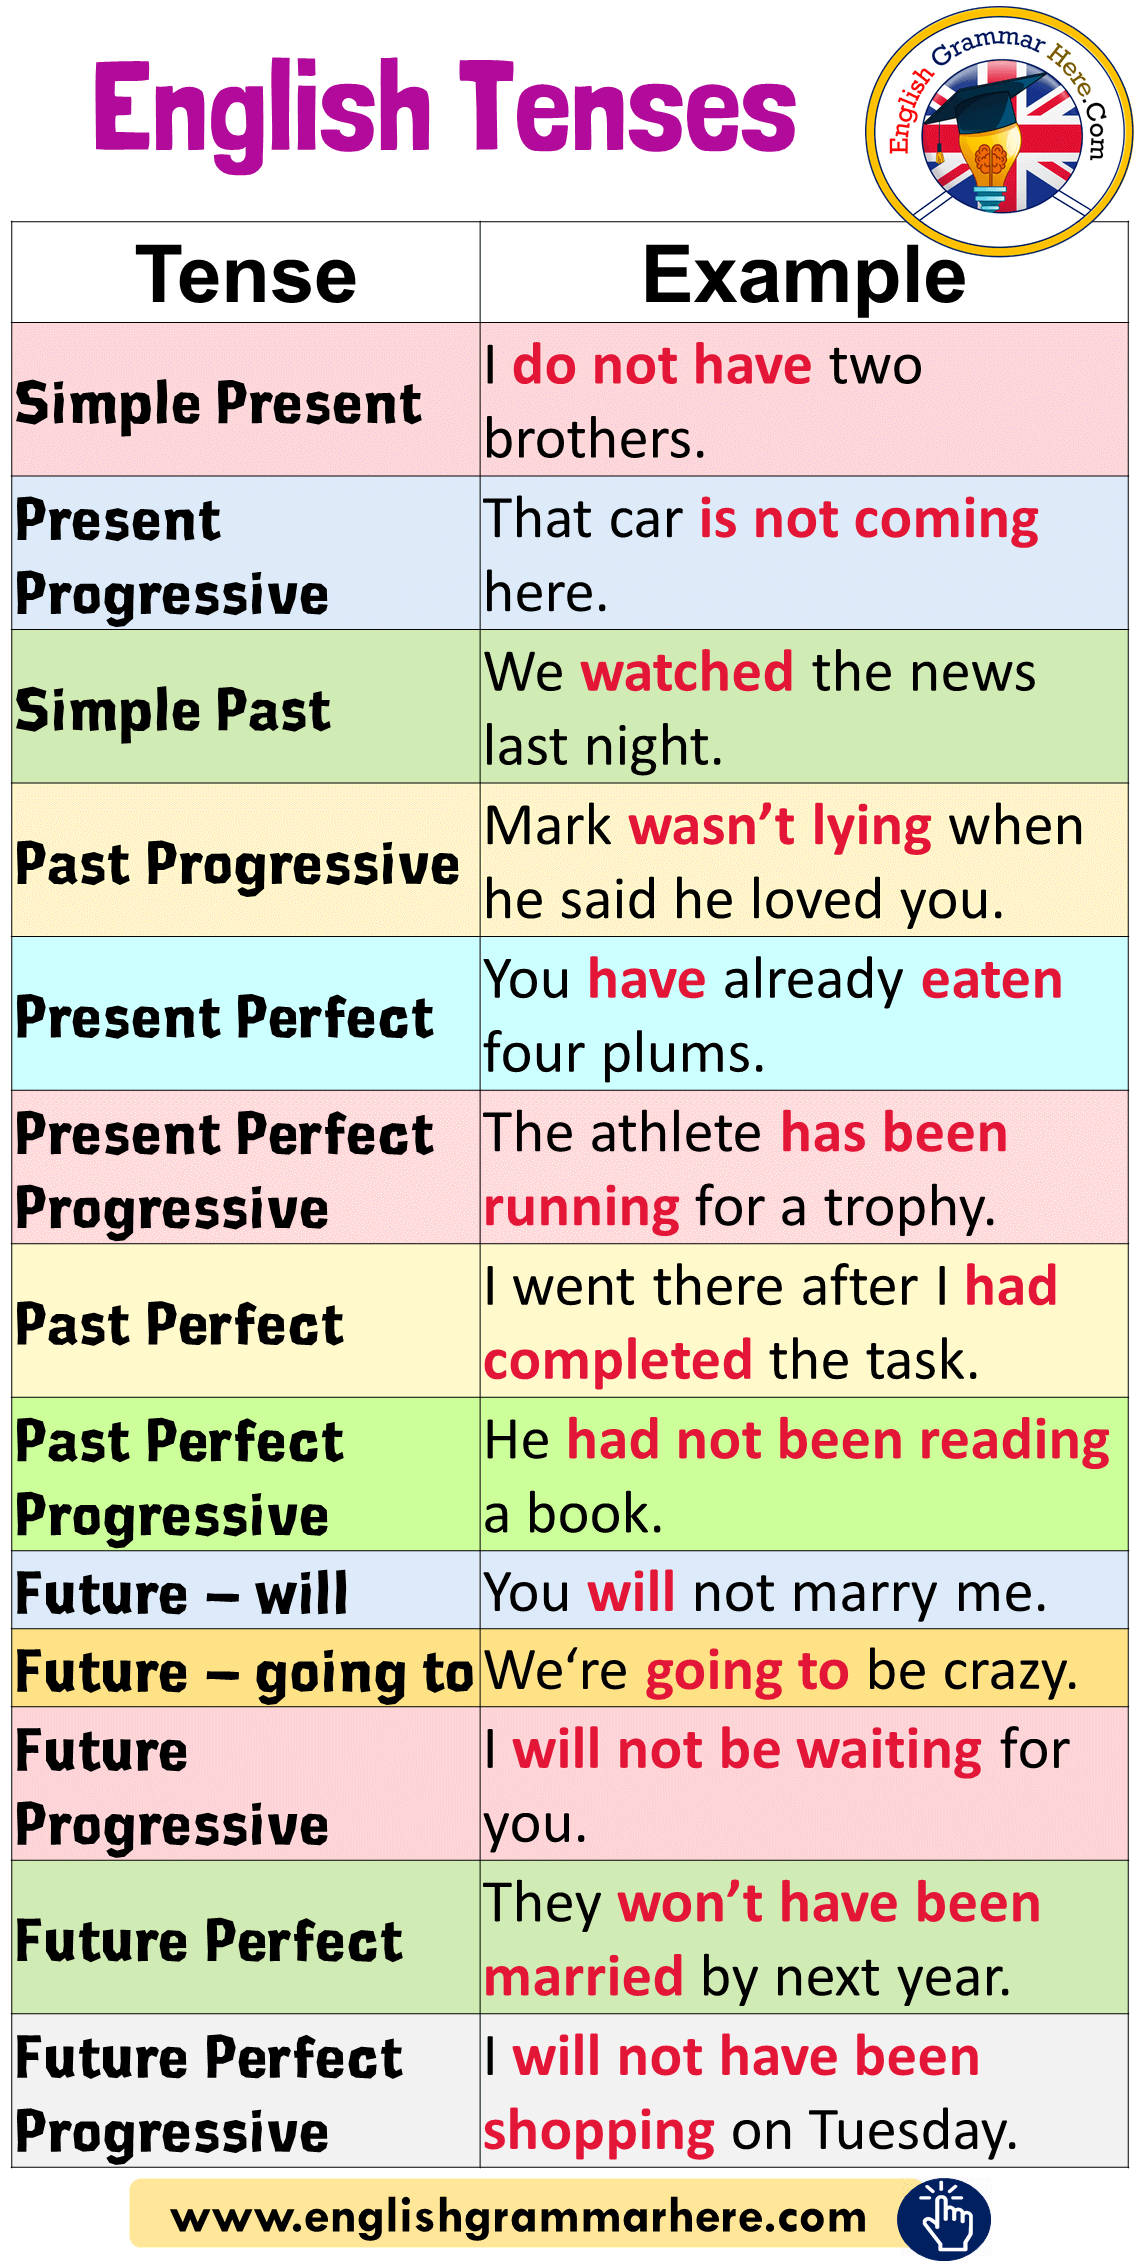 English Tenses And Example Sentences